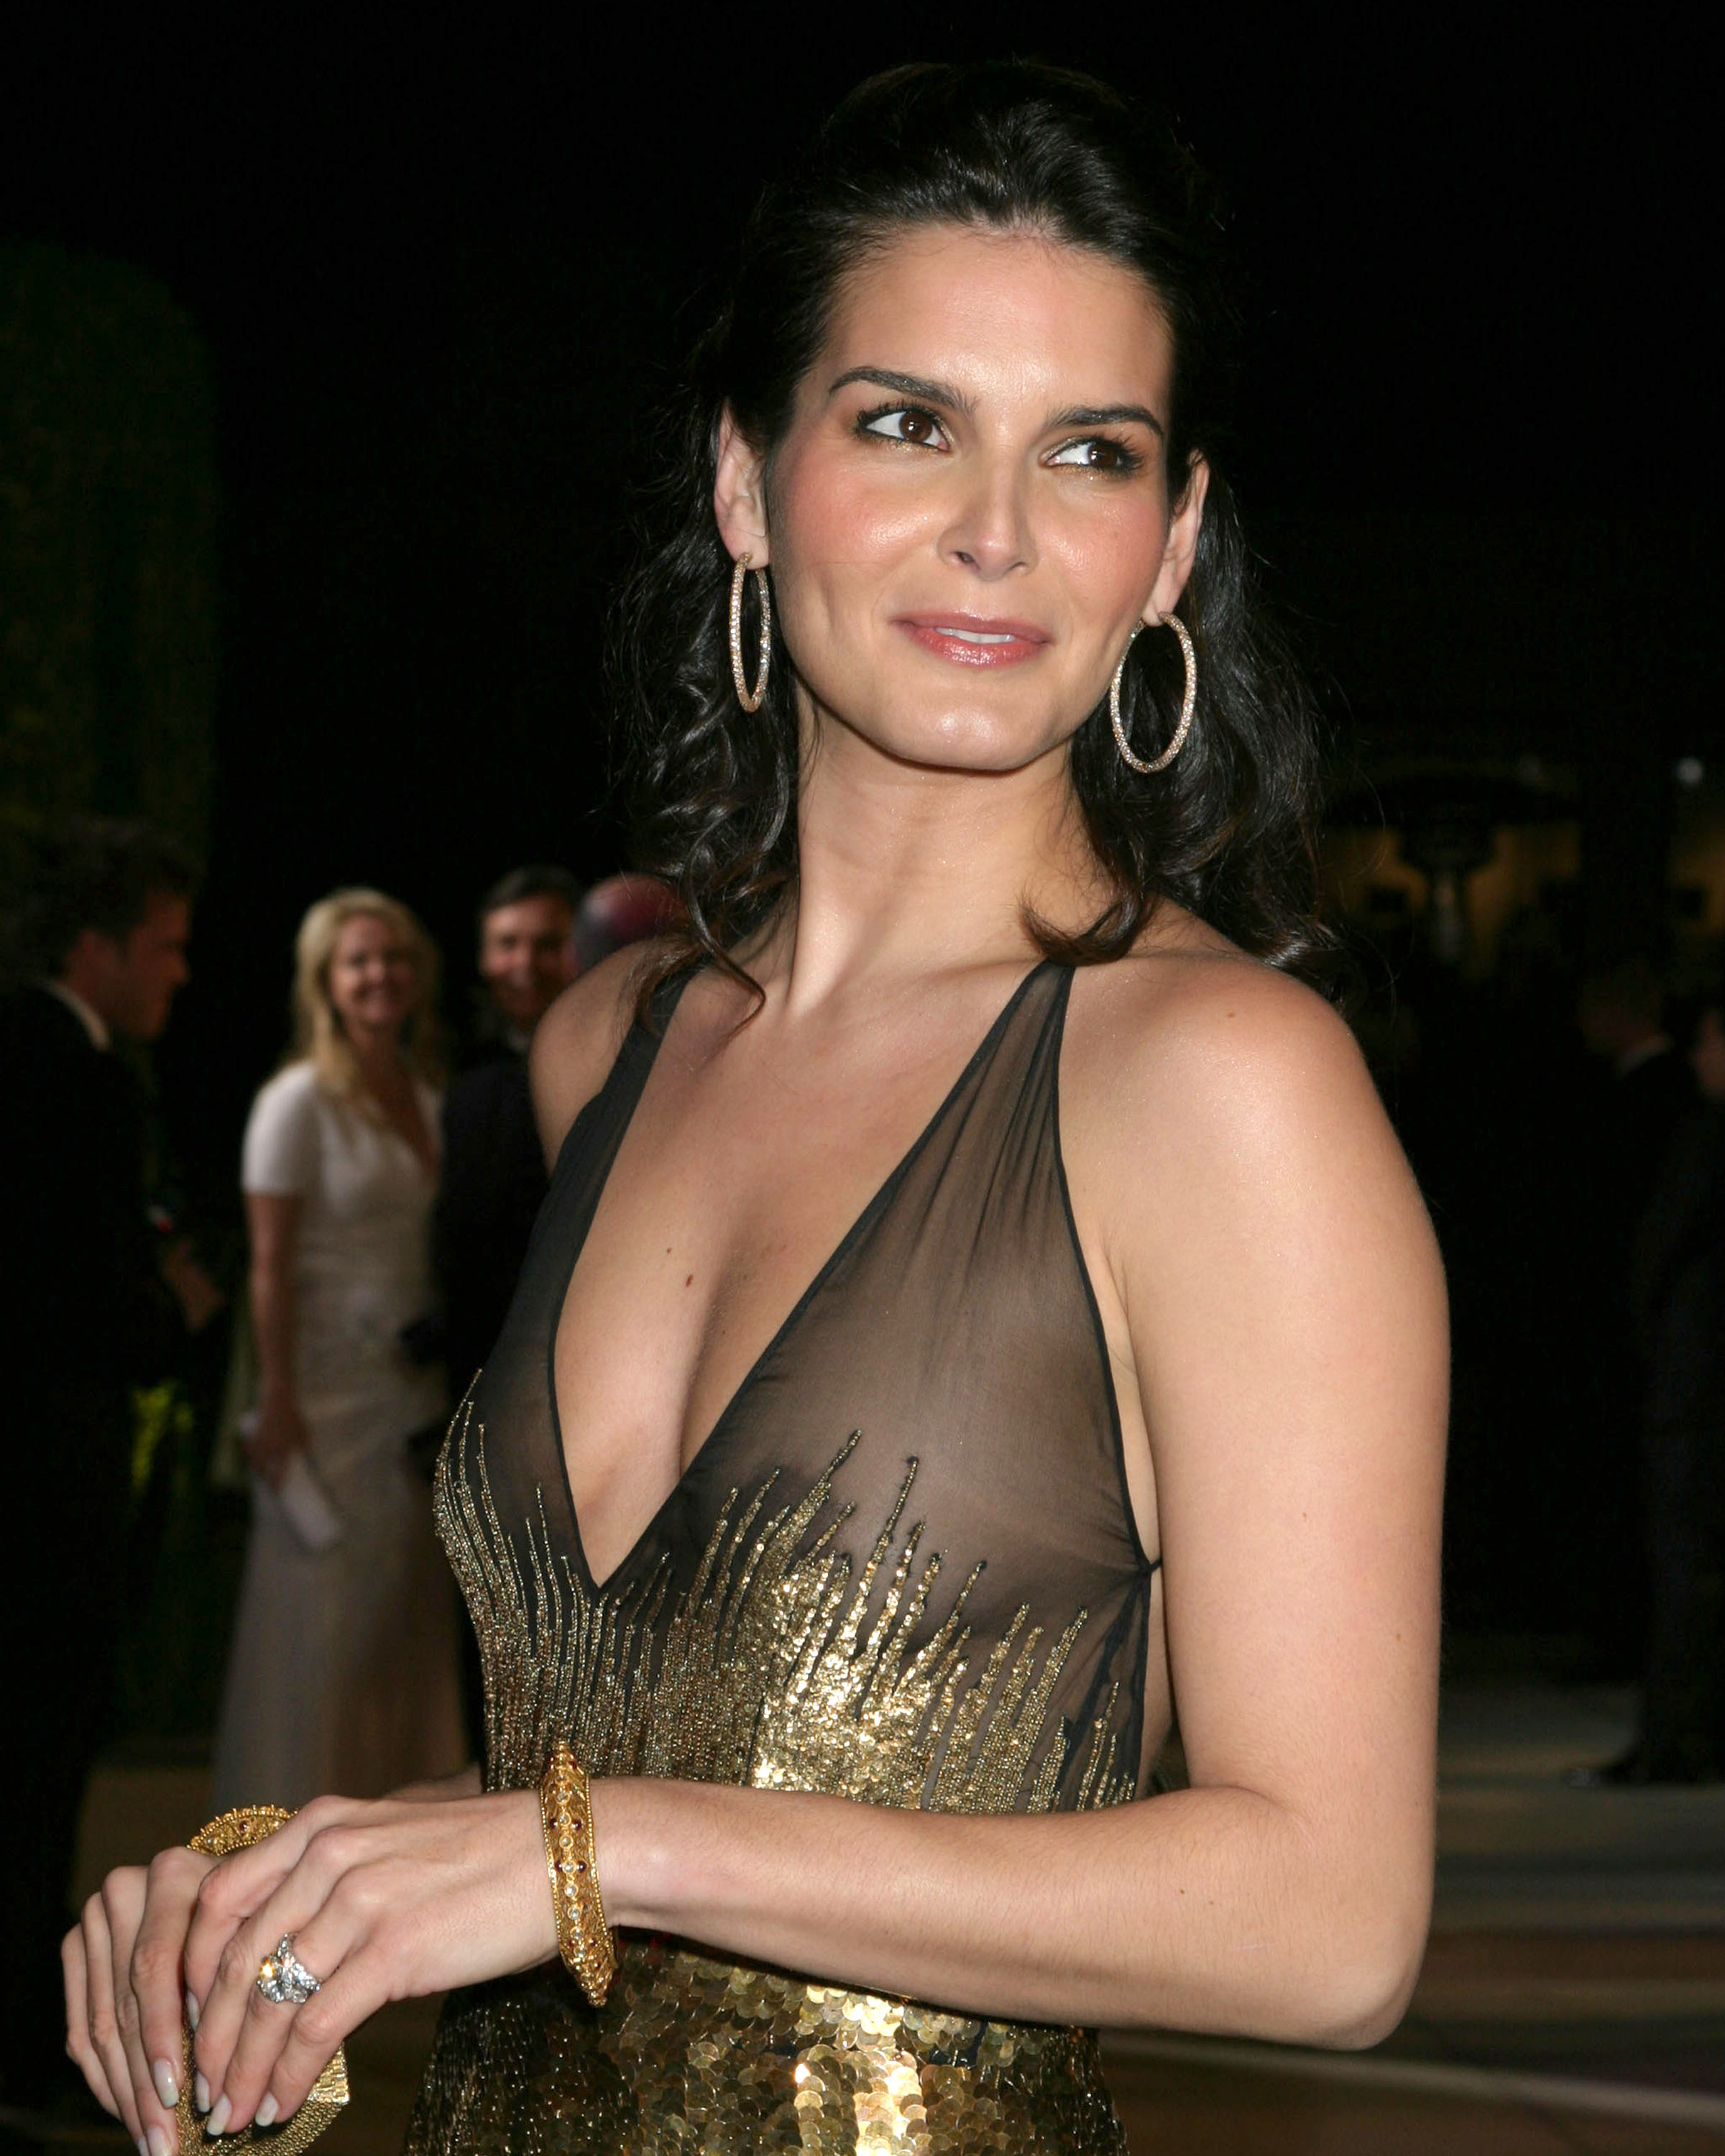 Angie Harmon At More Magazine September 2013: Angie Harmon @ The Vanity Fair Oscar Party In West